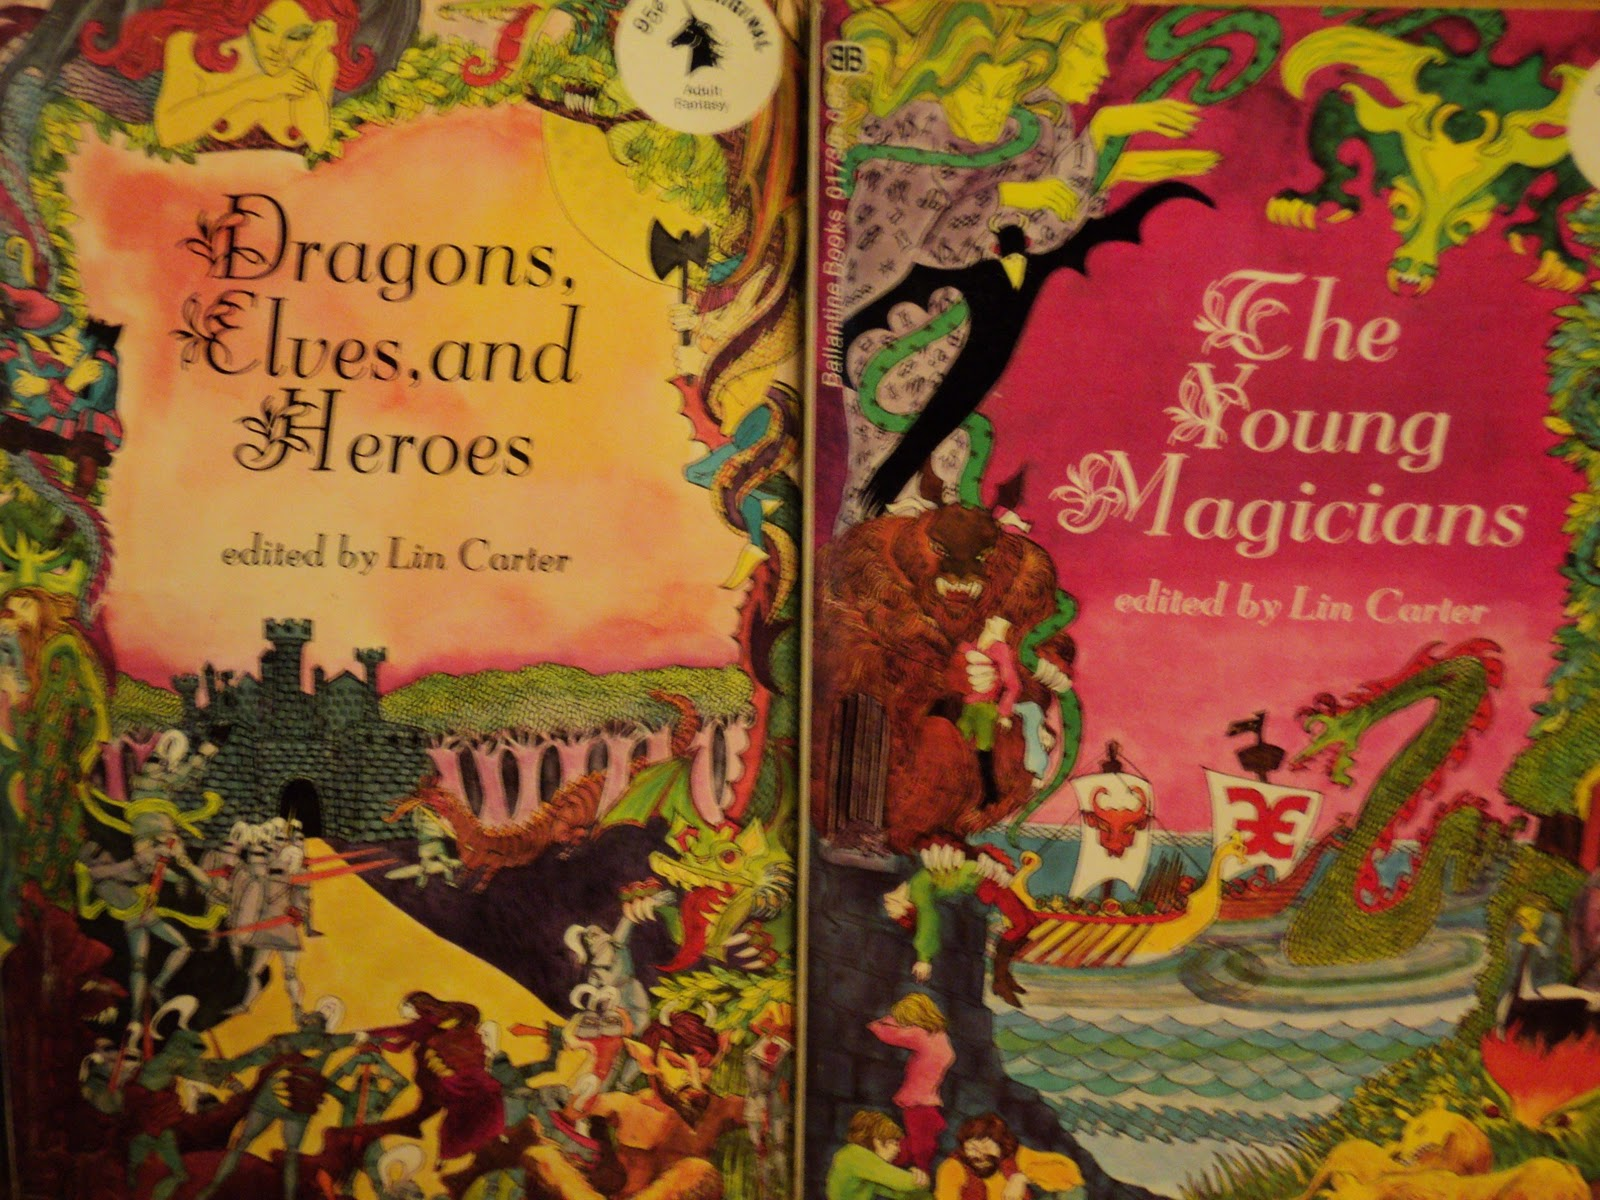 Ballantine Adult Fantasy covers, Part I